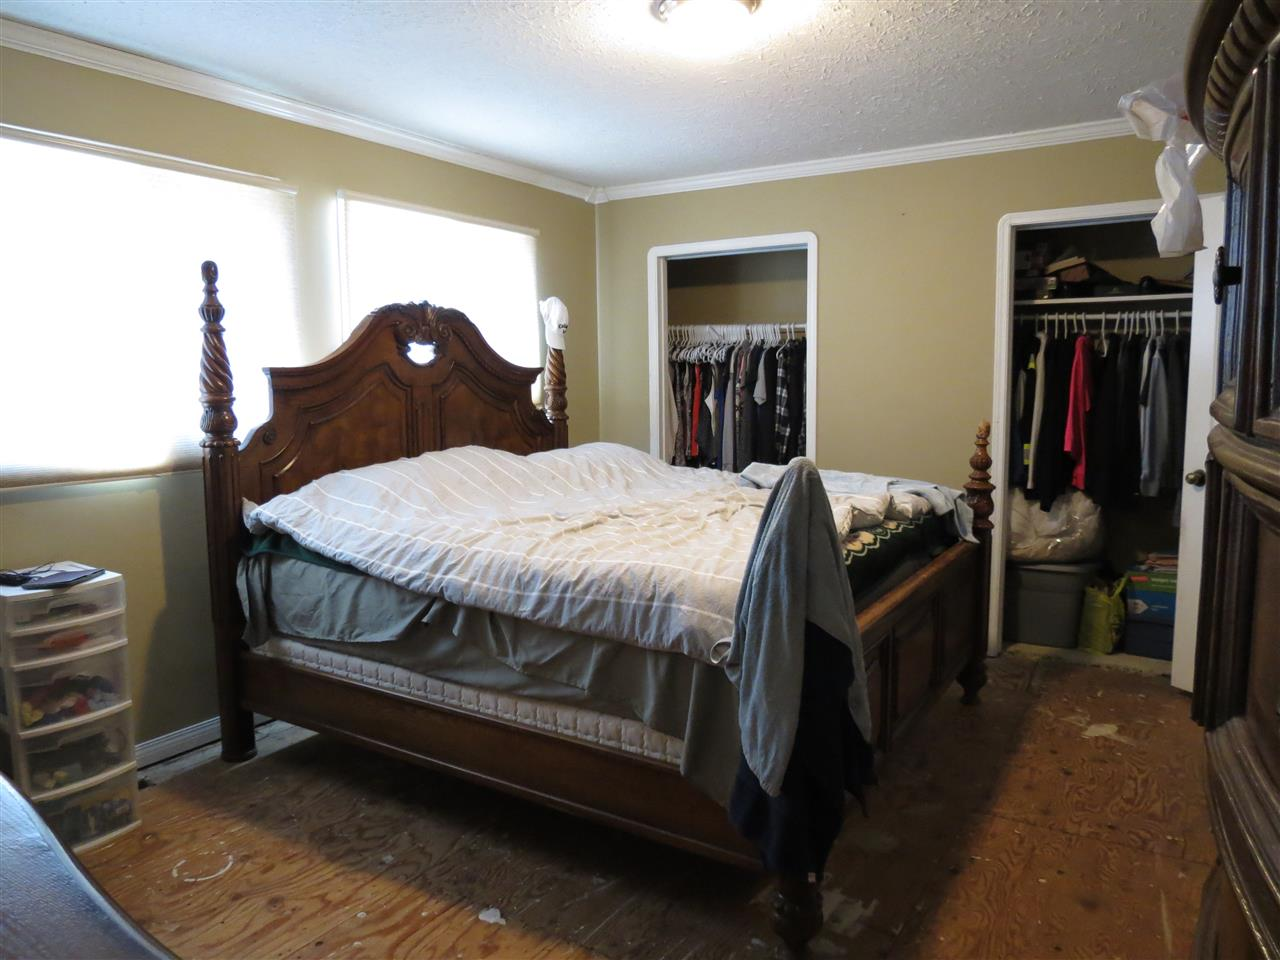 Photo 7: 110 Discovery Avenue: Cardiff House for sale : MLS(r) # E4062394